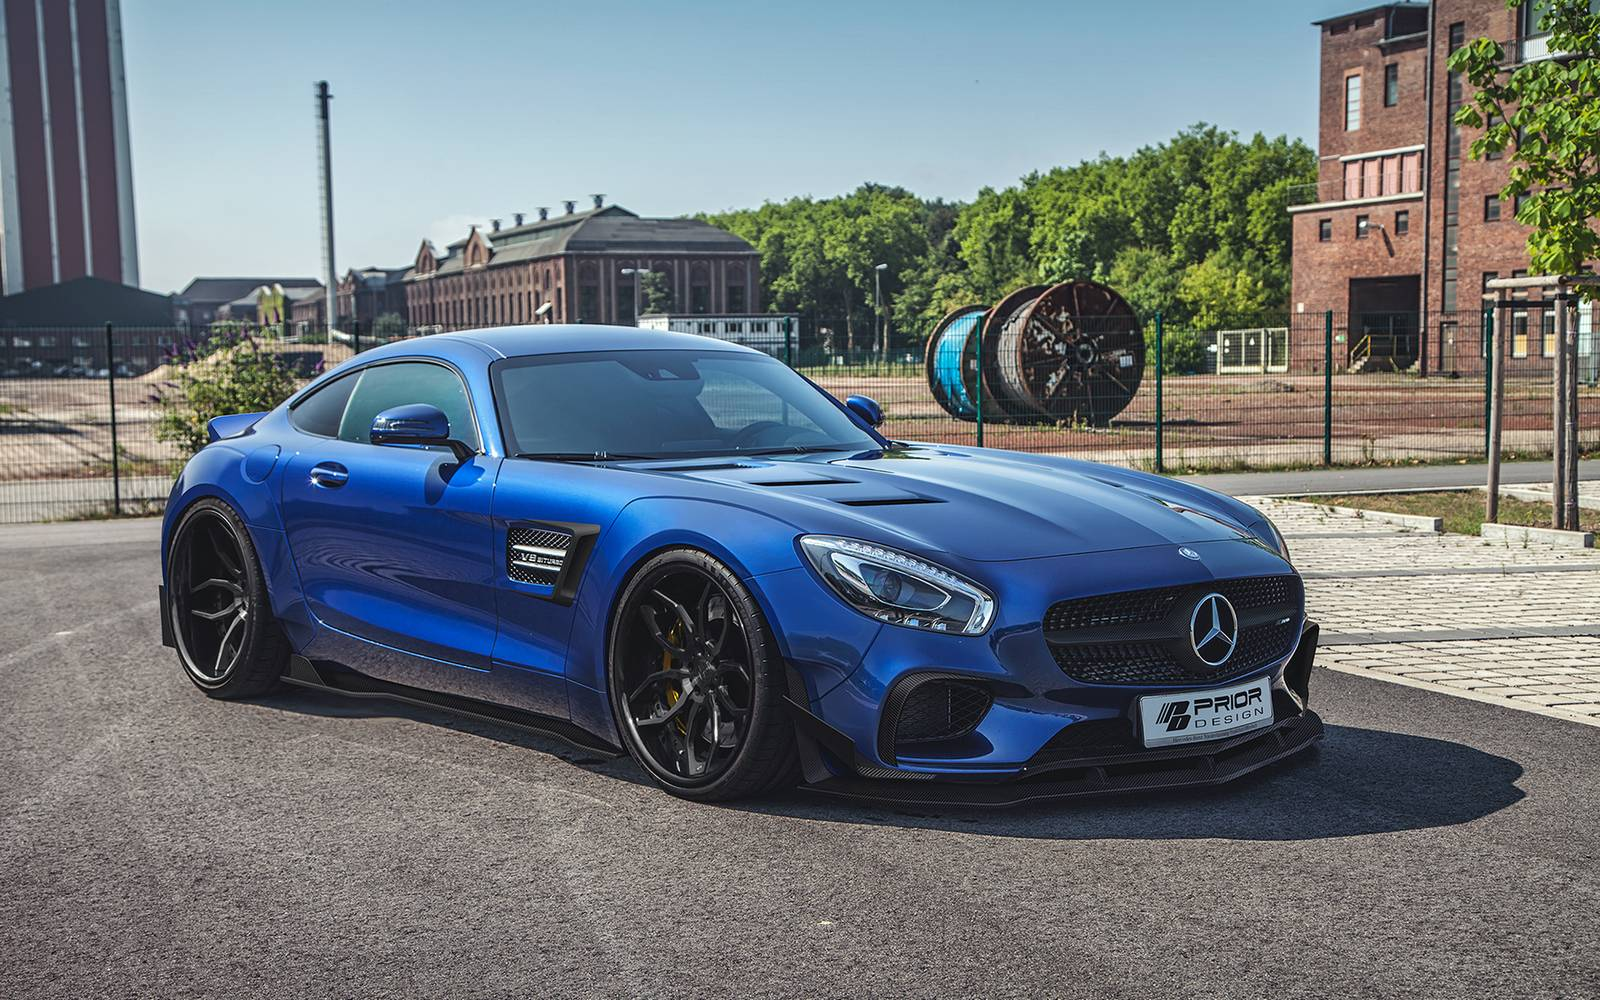 Prior design reveals mercedes amg gt widebody kit for Mercedes benz amg kit